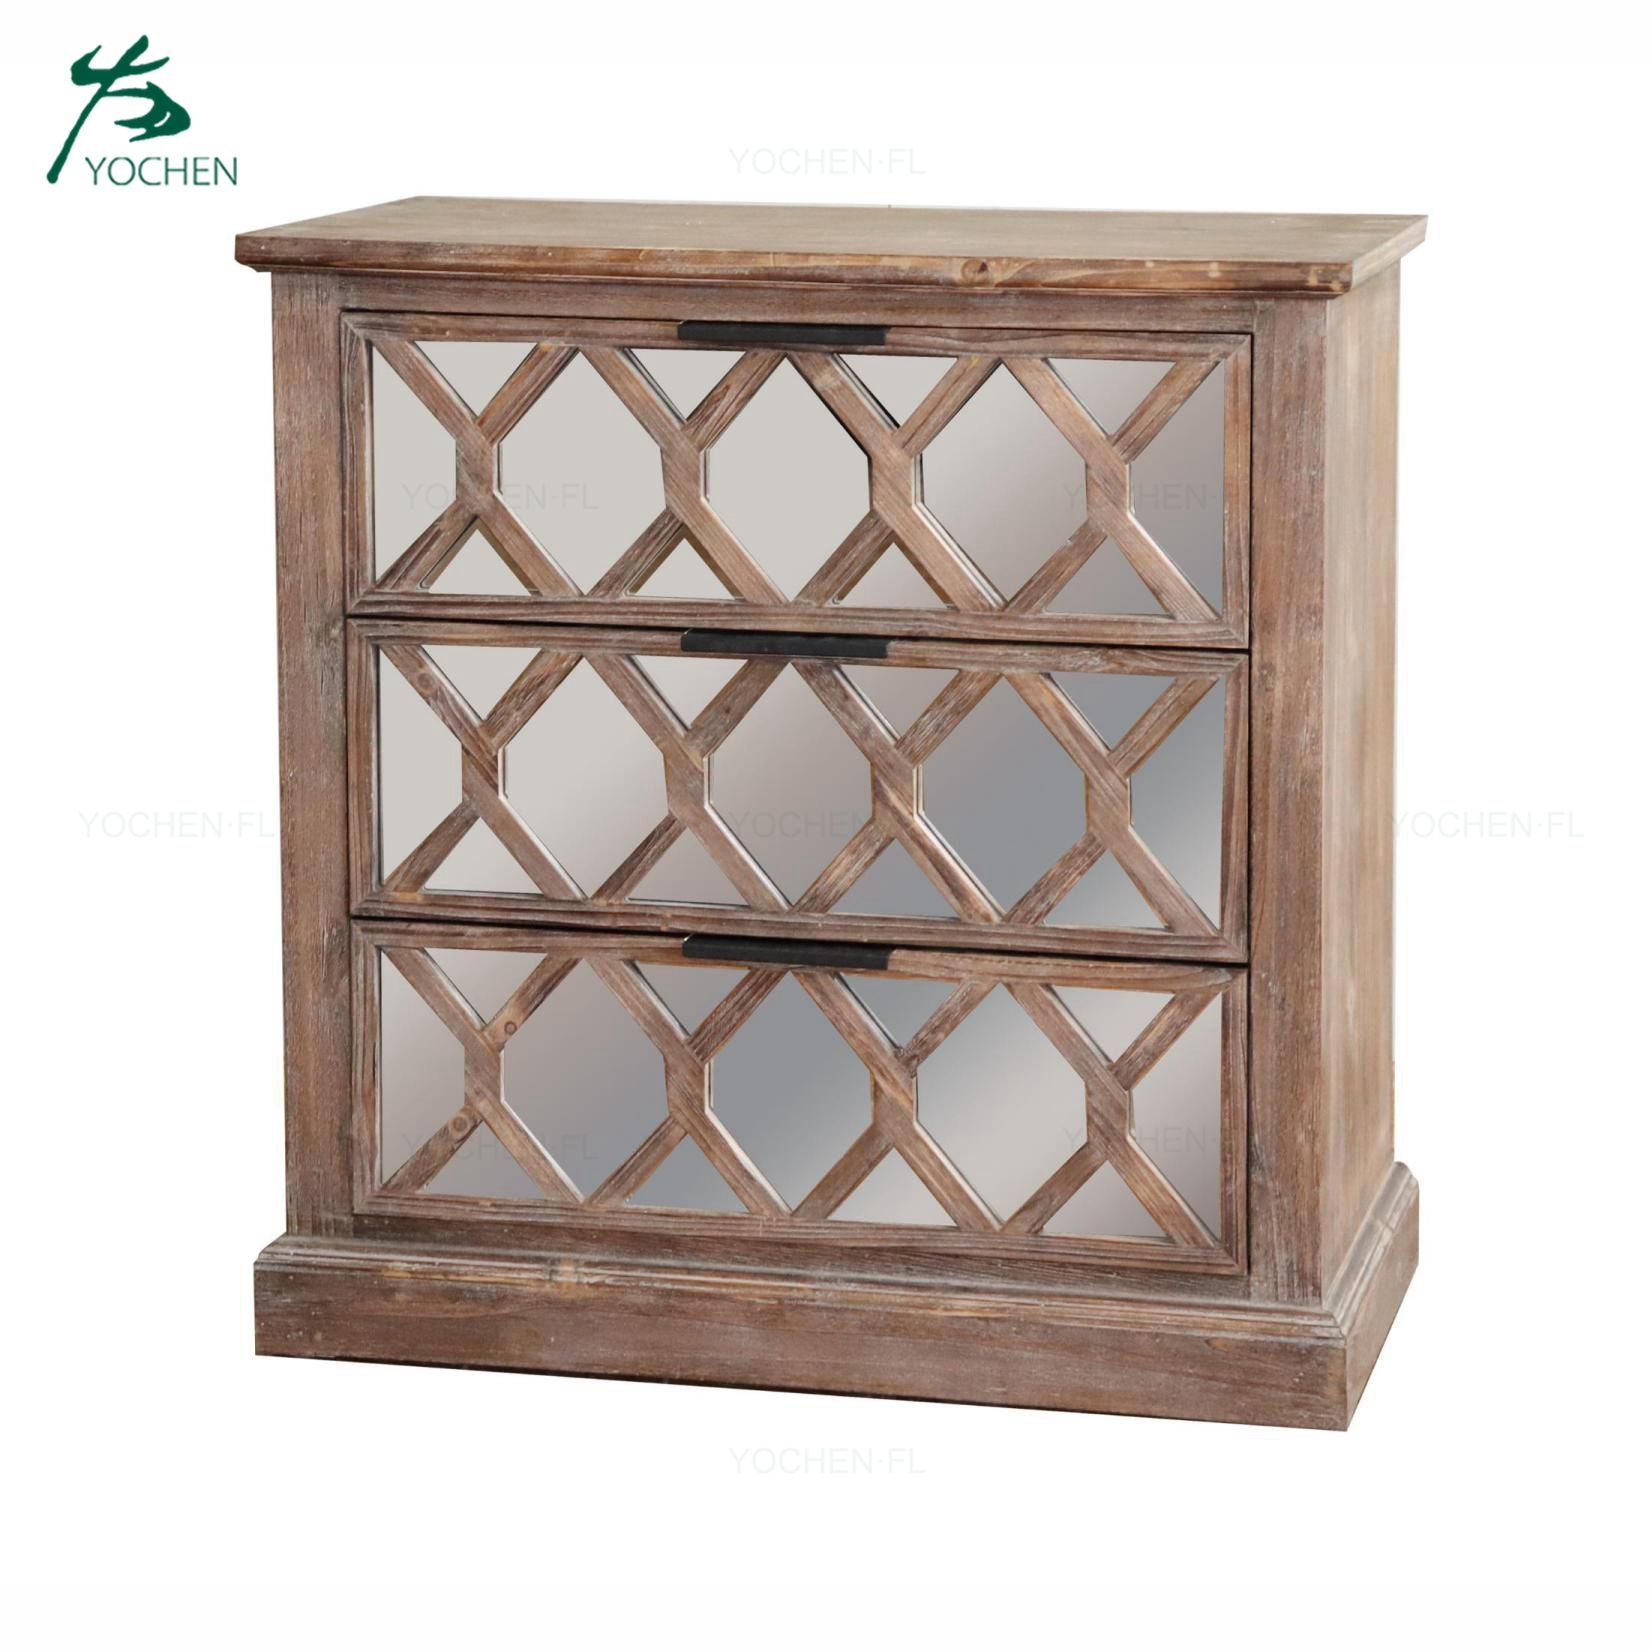 Artistic wooden carve mirror furniture natural wood color mirrored sideboard